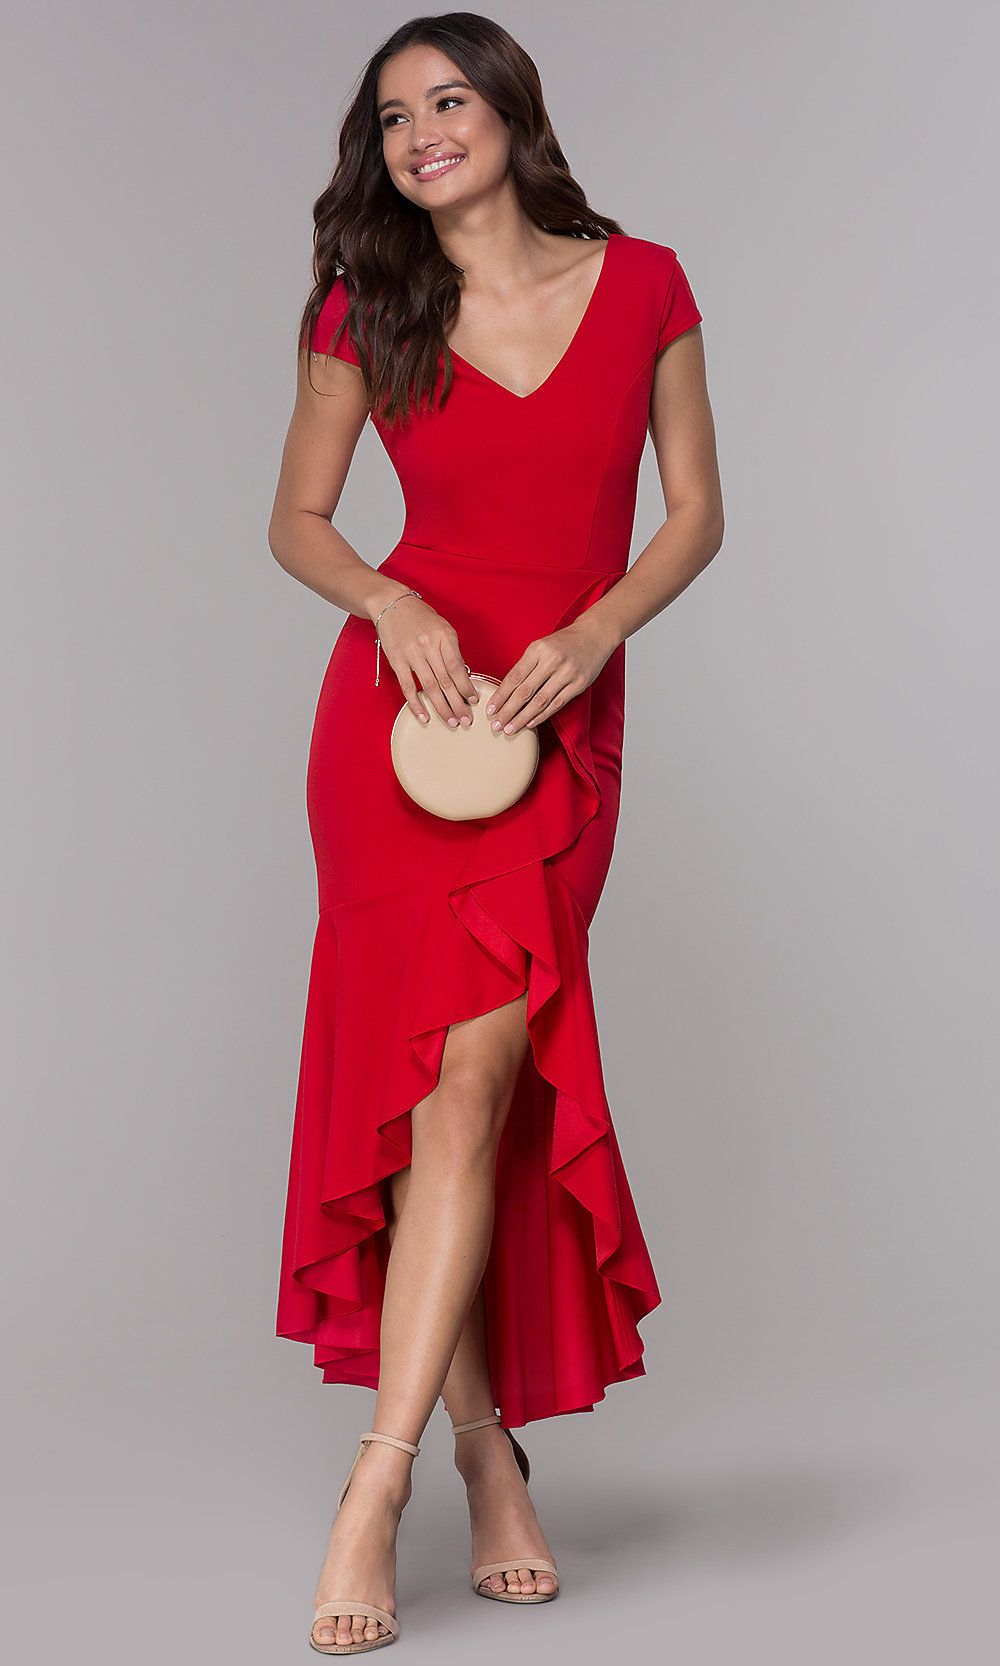 Highlow wedding guest vneck dress with ruffles red